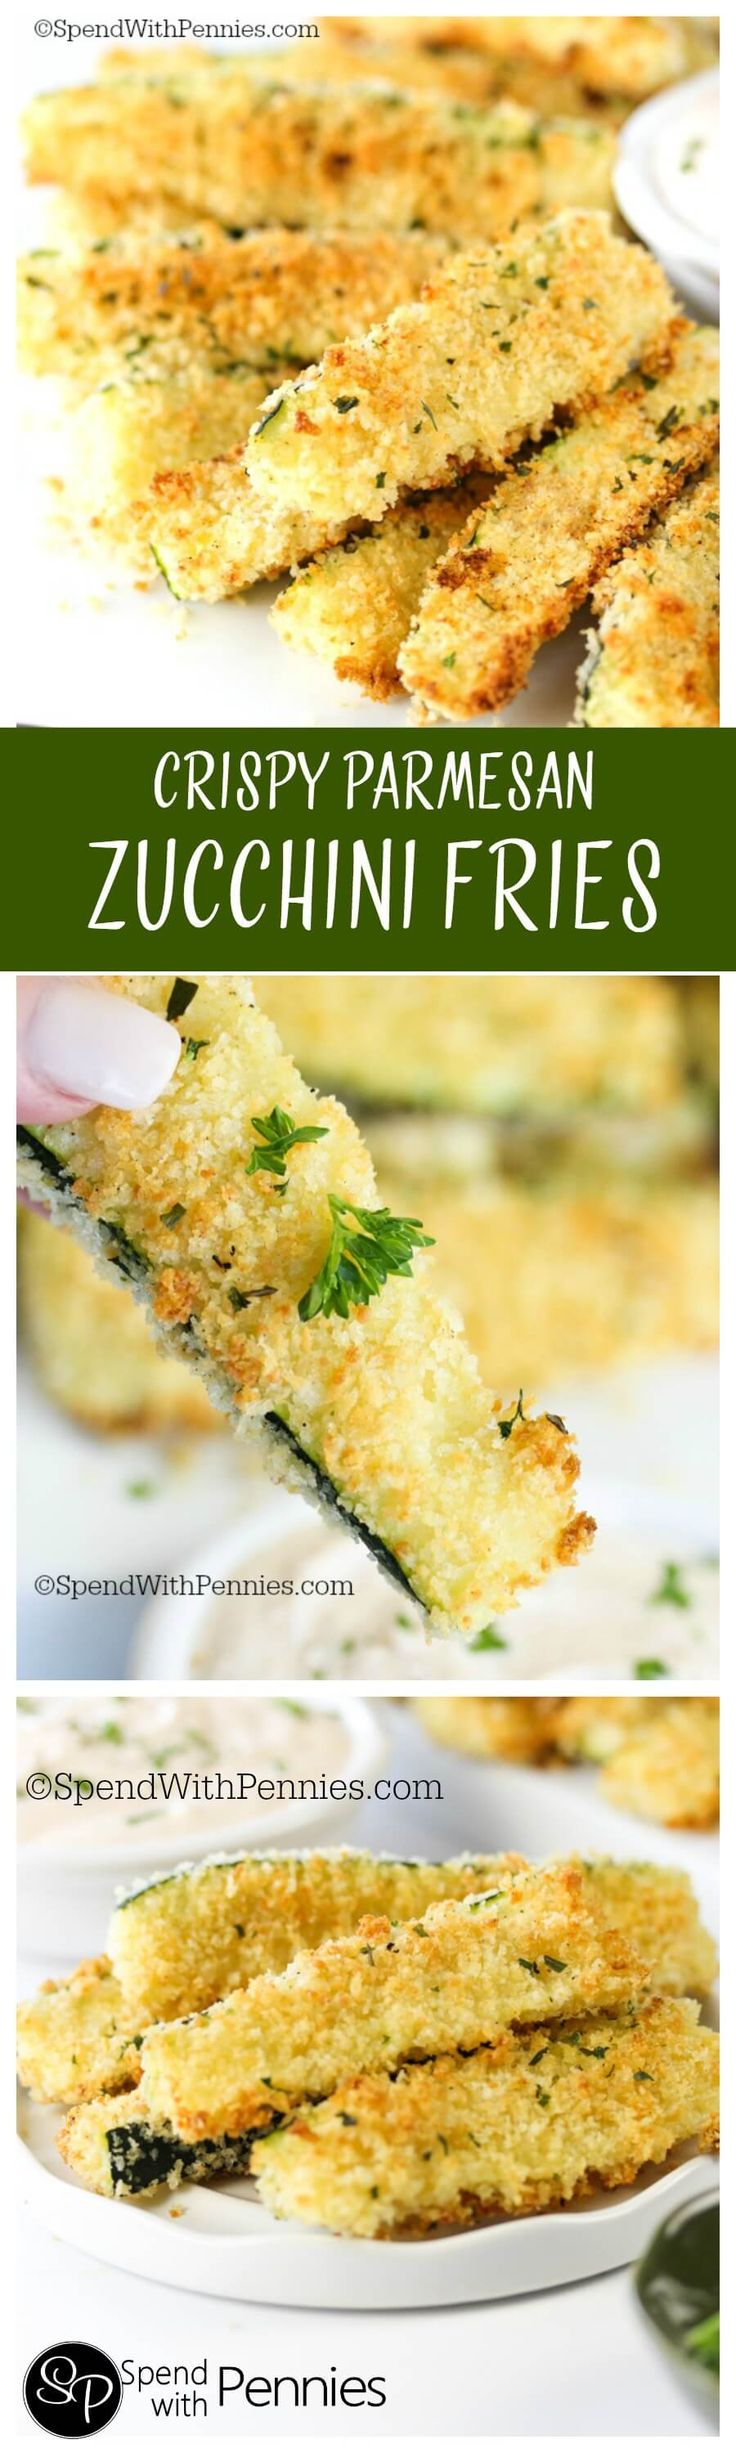 Crispy Parmesan Zucchini Fries! The perfect way to enjoy zucchini, these are quickly baked in the oven and come out crispy and delicious!